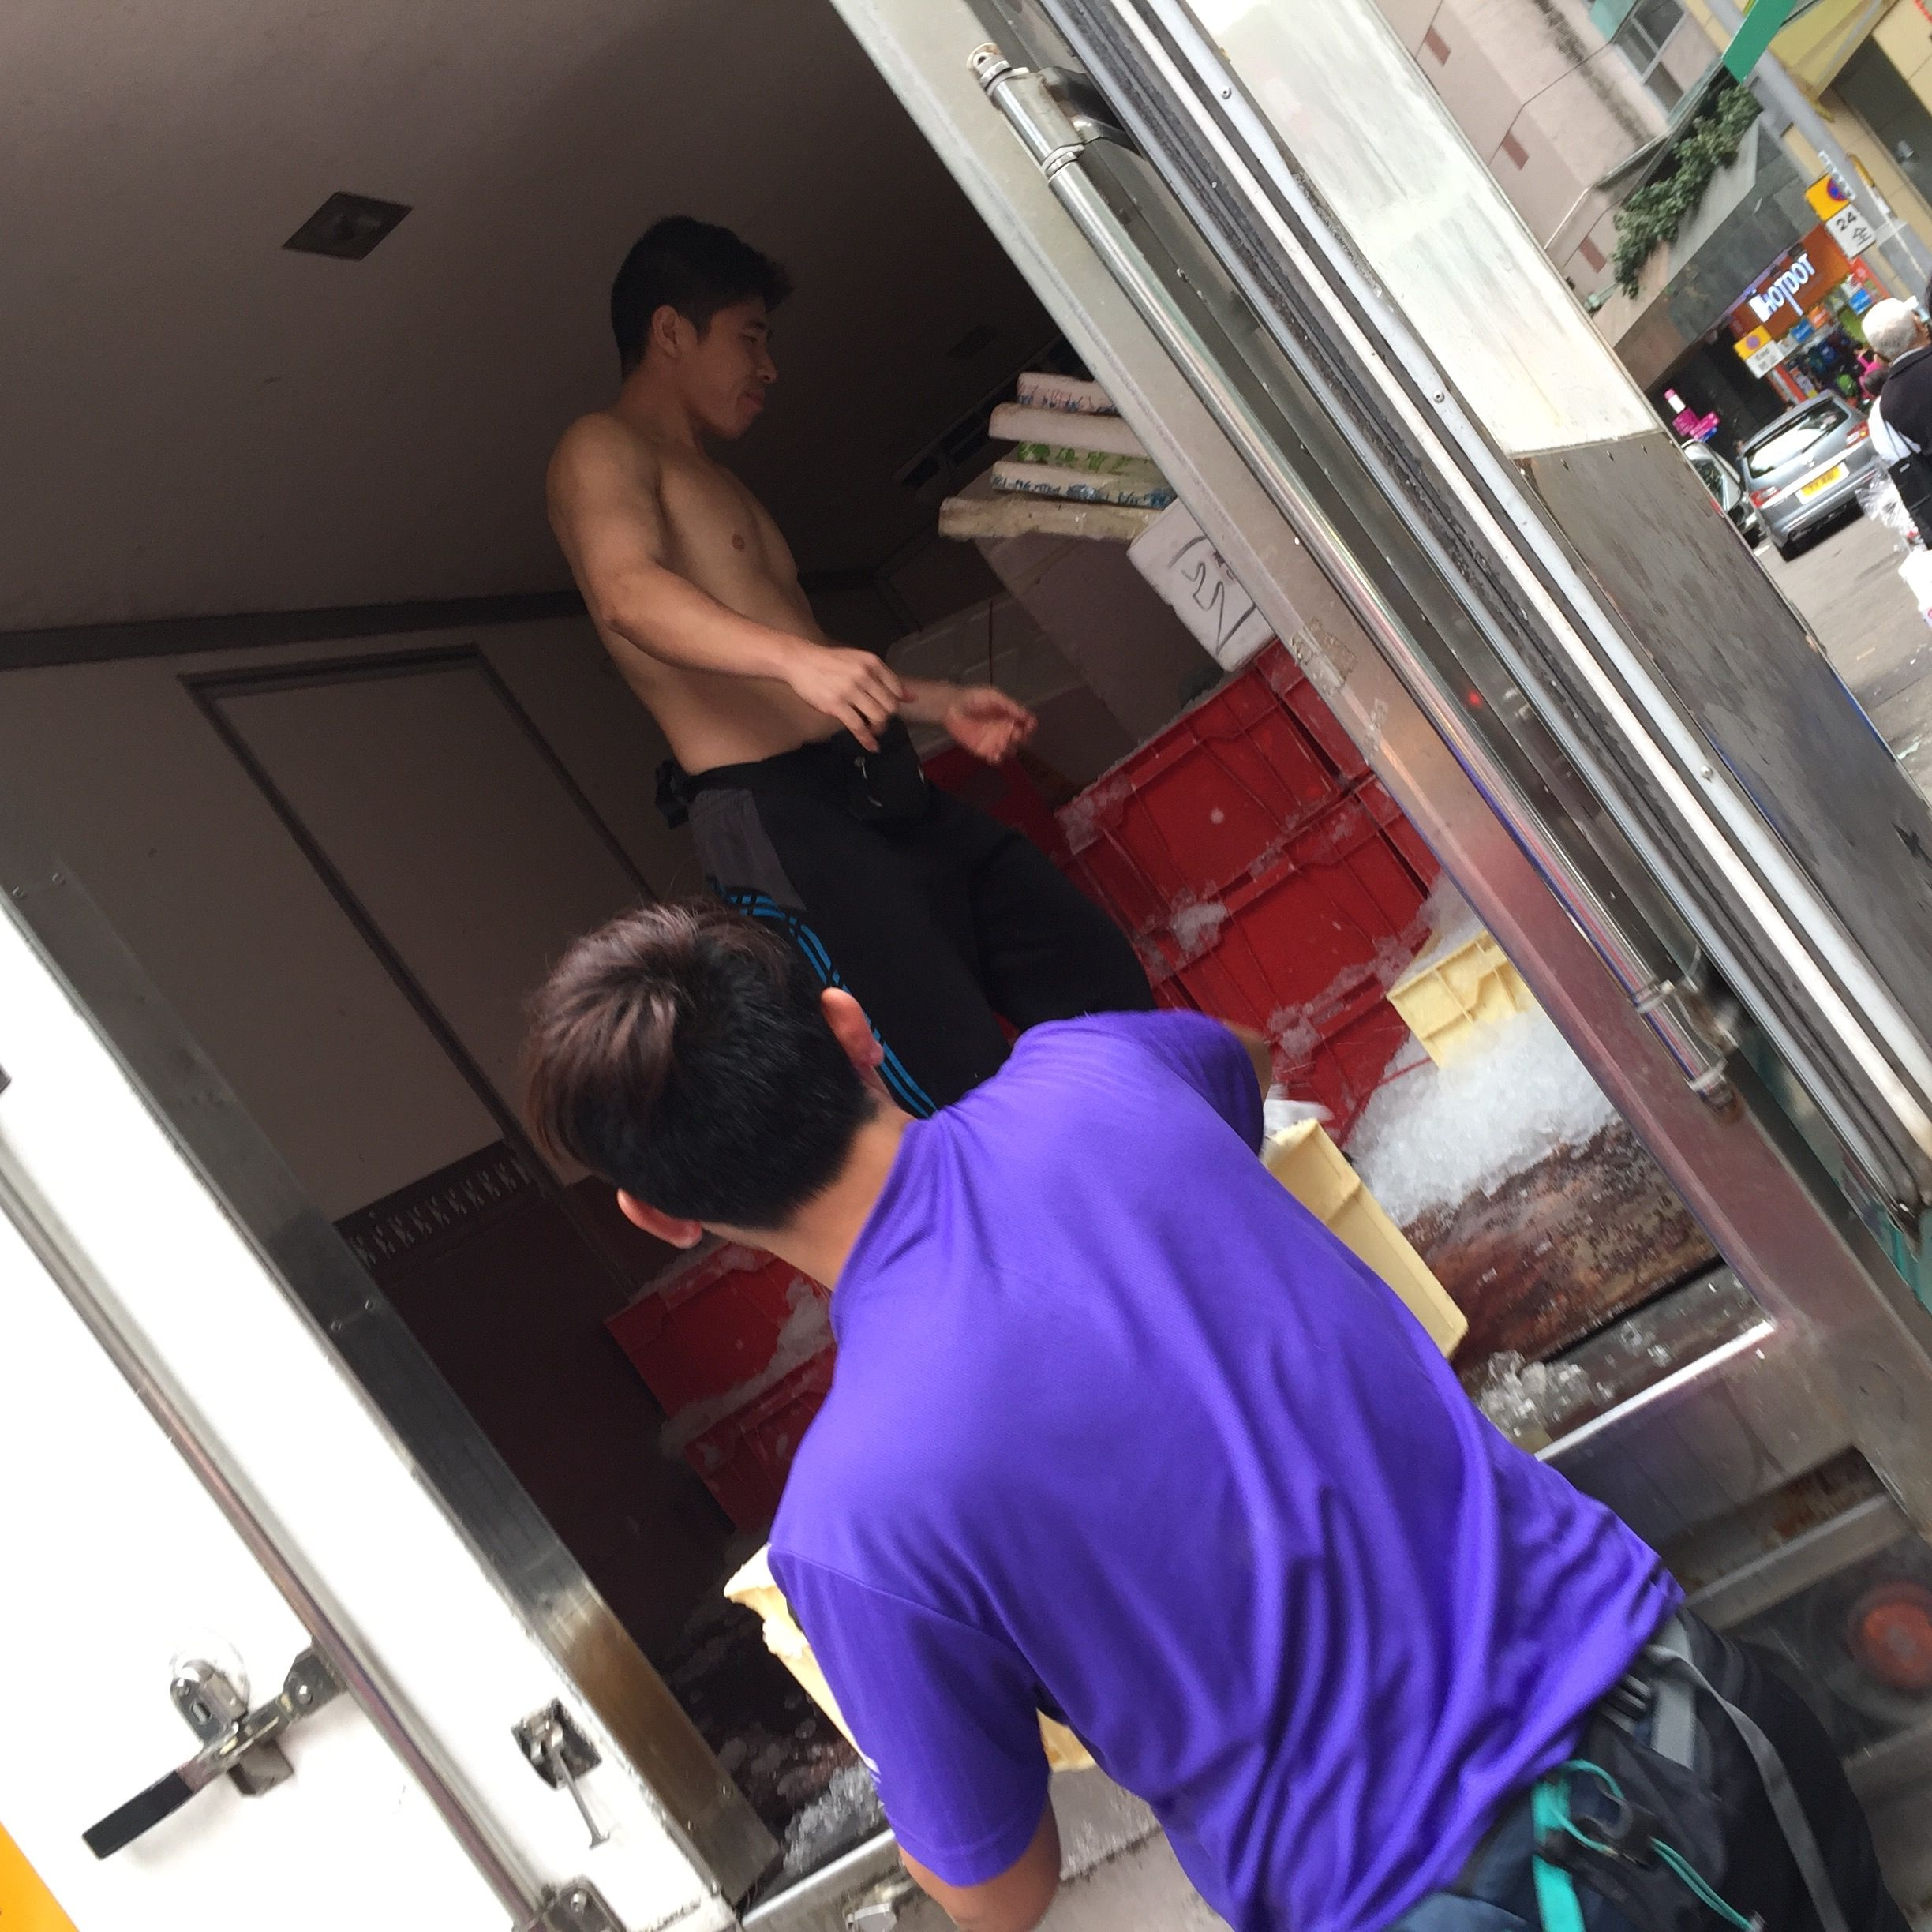 Bill  E2 9c 93 Delivery Guys Organising Shaved Ice Deliveries To Traders In Wan Chai Markets